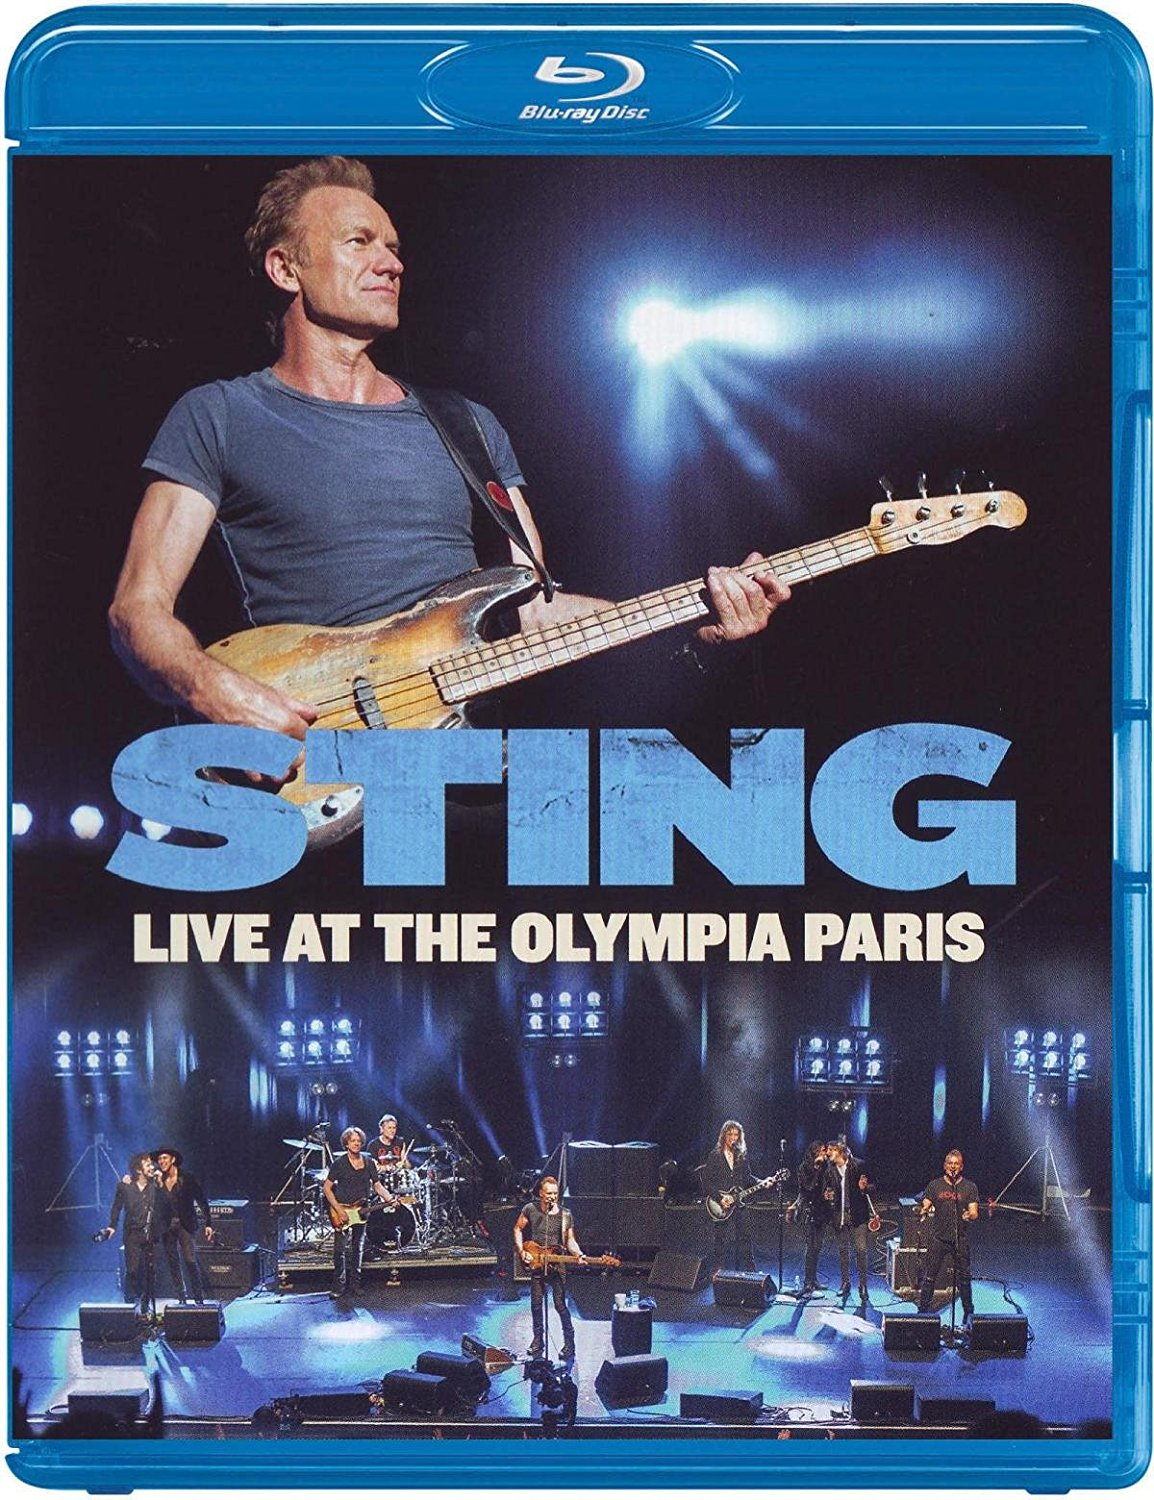 Sting: Live At The Olympia Paris [Blu-ray] (Blu-ray)